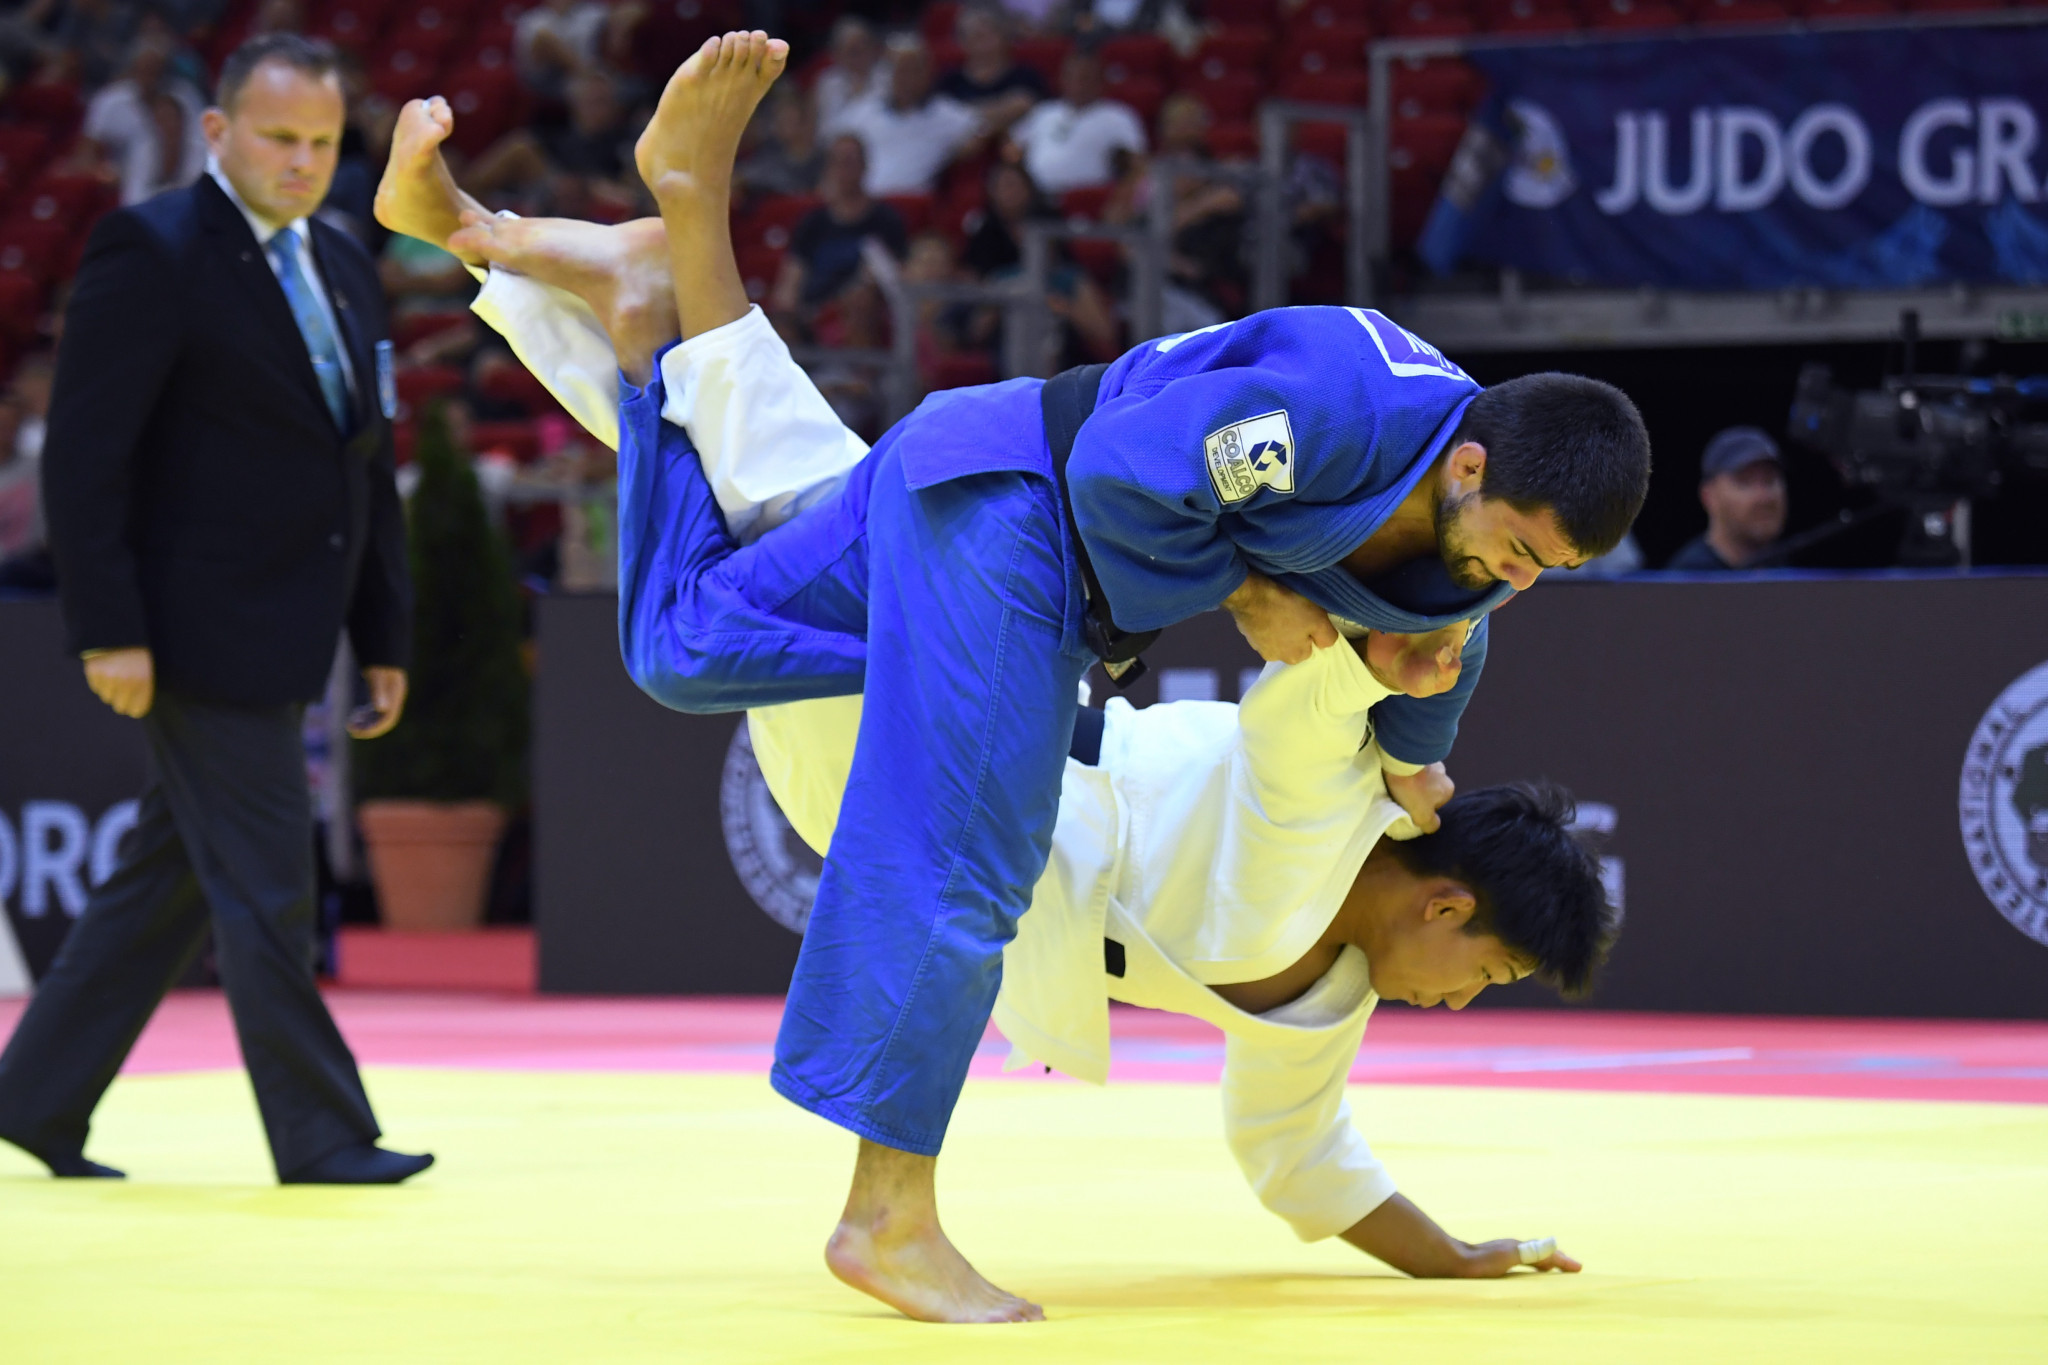 World Judo Tour poised to return in October with Budapest Grand Slam